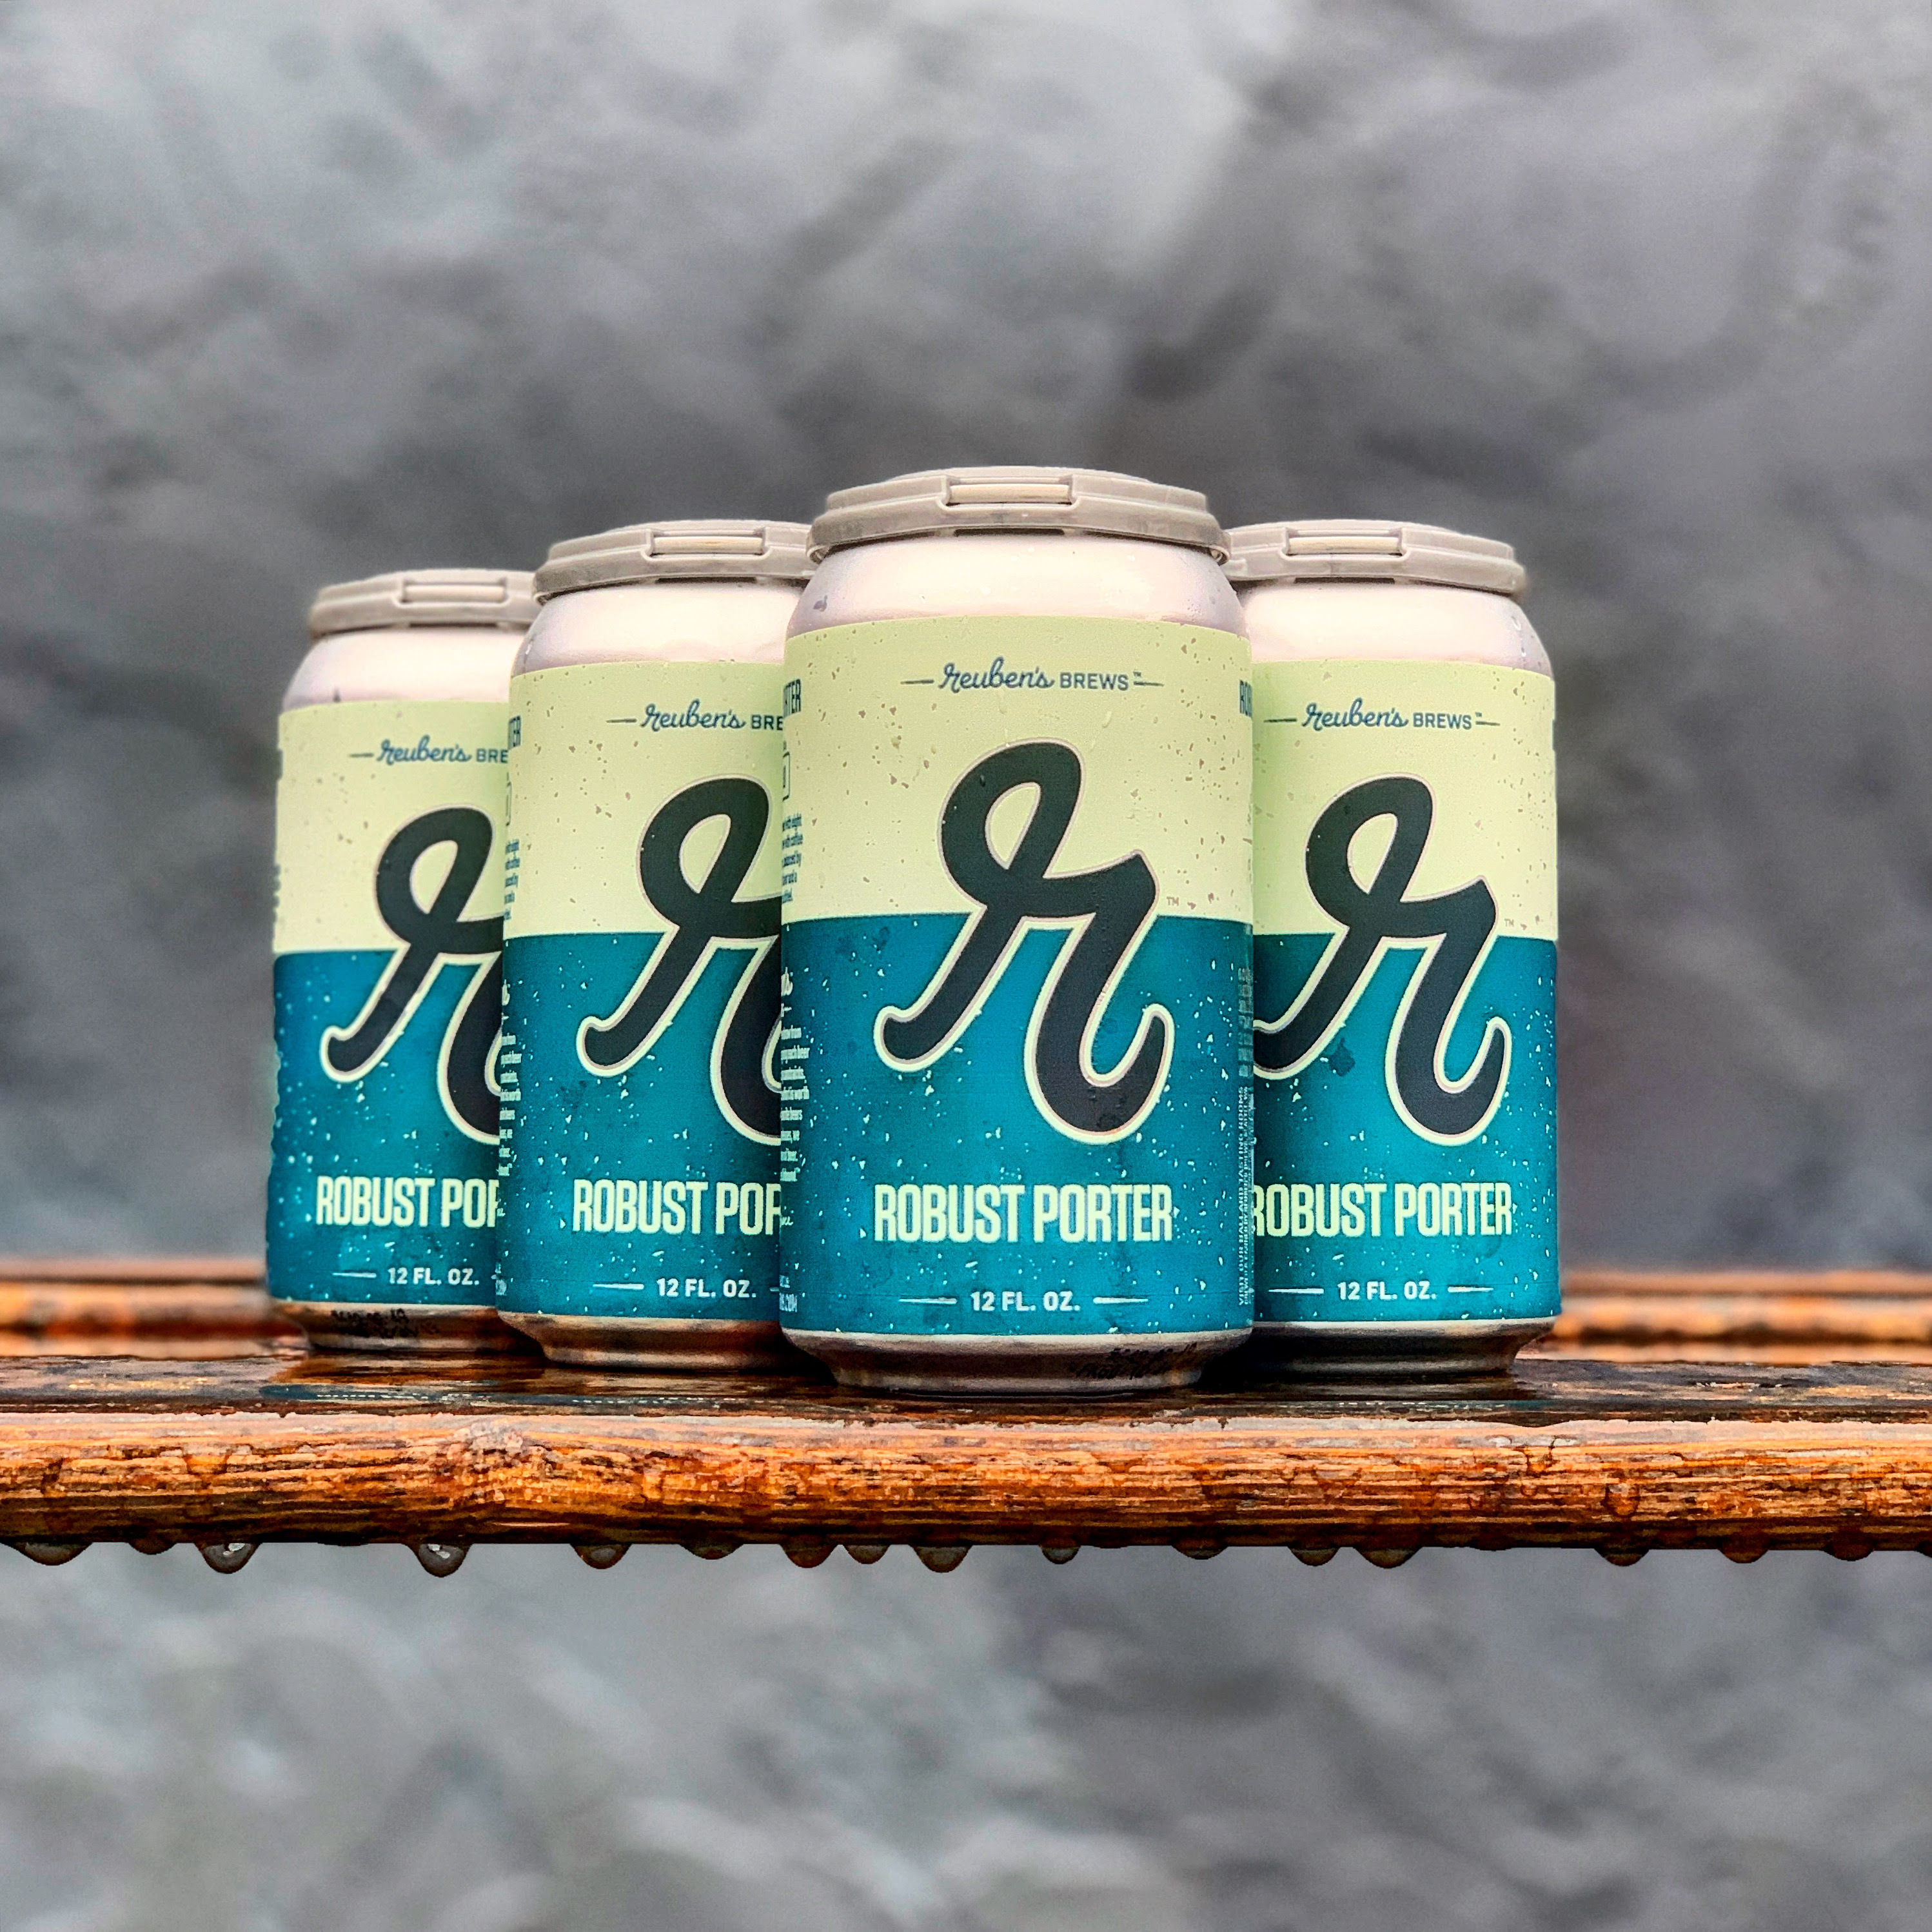 Reuben's Brews Robust Porter is now available in 12oz. 6-pack cans. (image courtesy of Reuben's Brews)